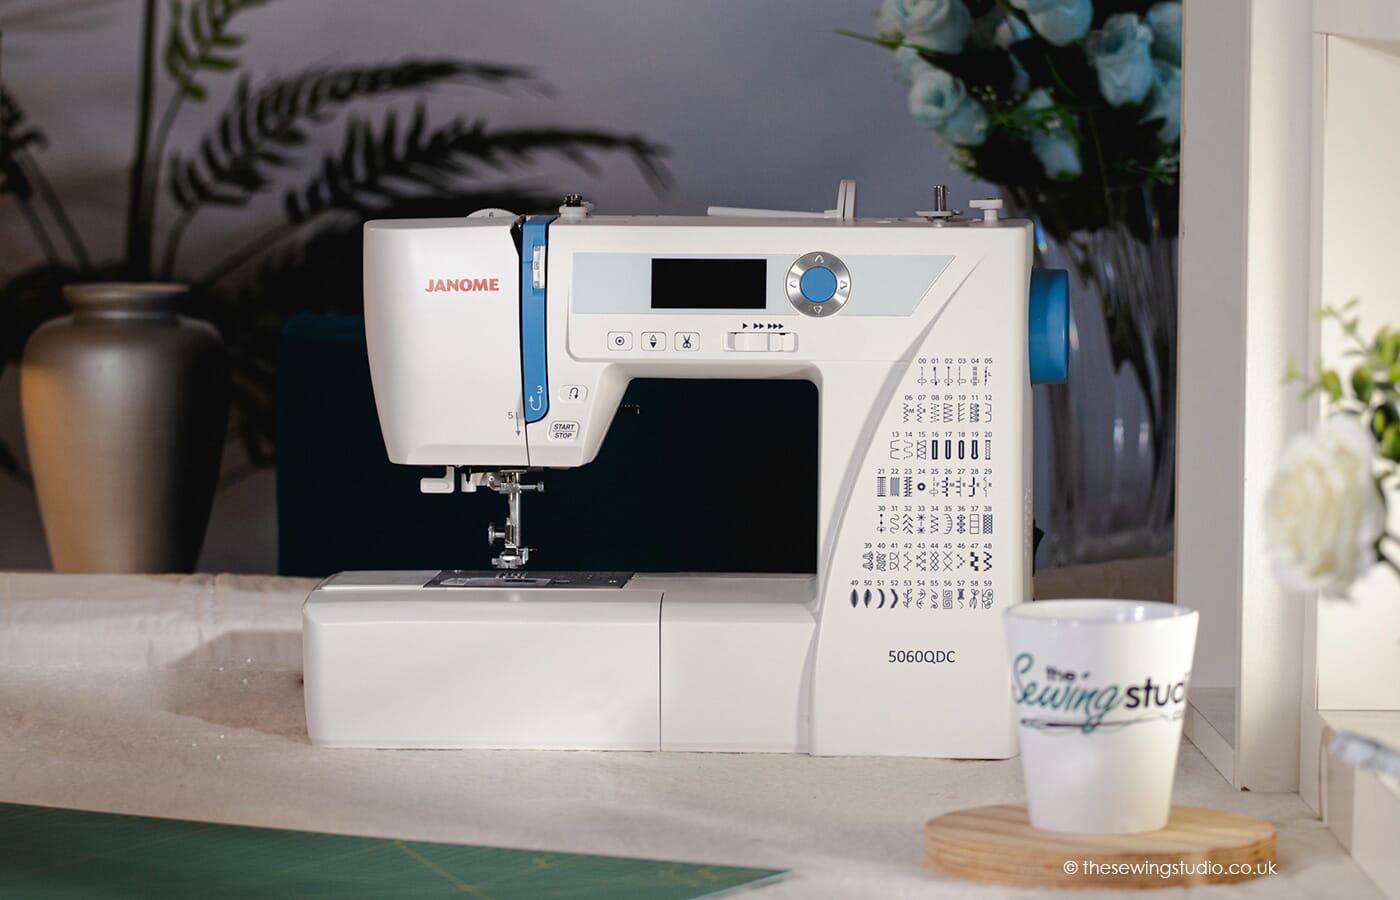 Janome 5060QDC Sewing Machine in a Sewing Room